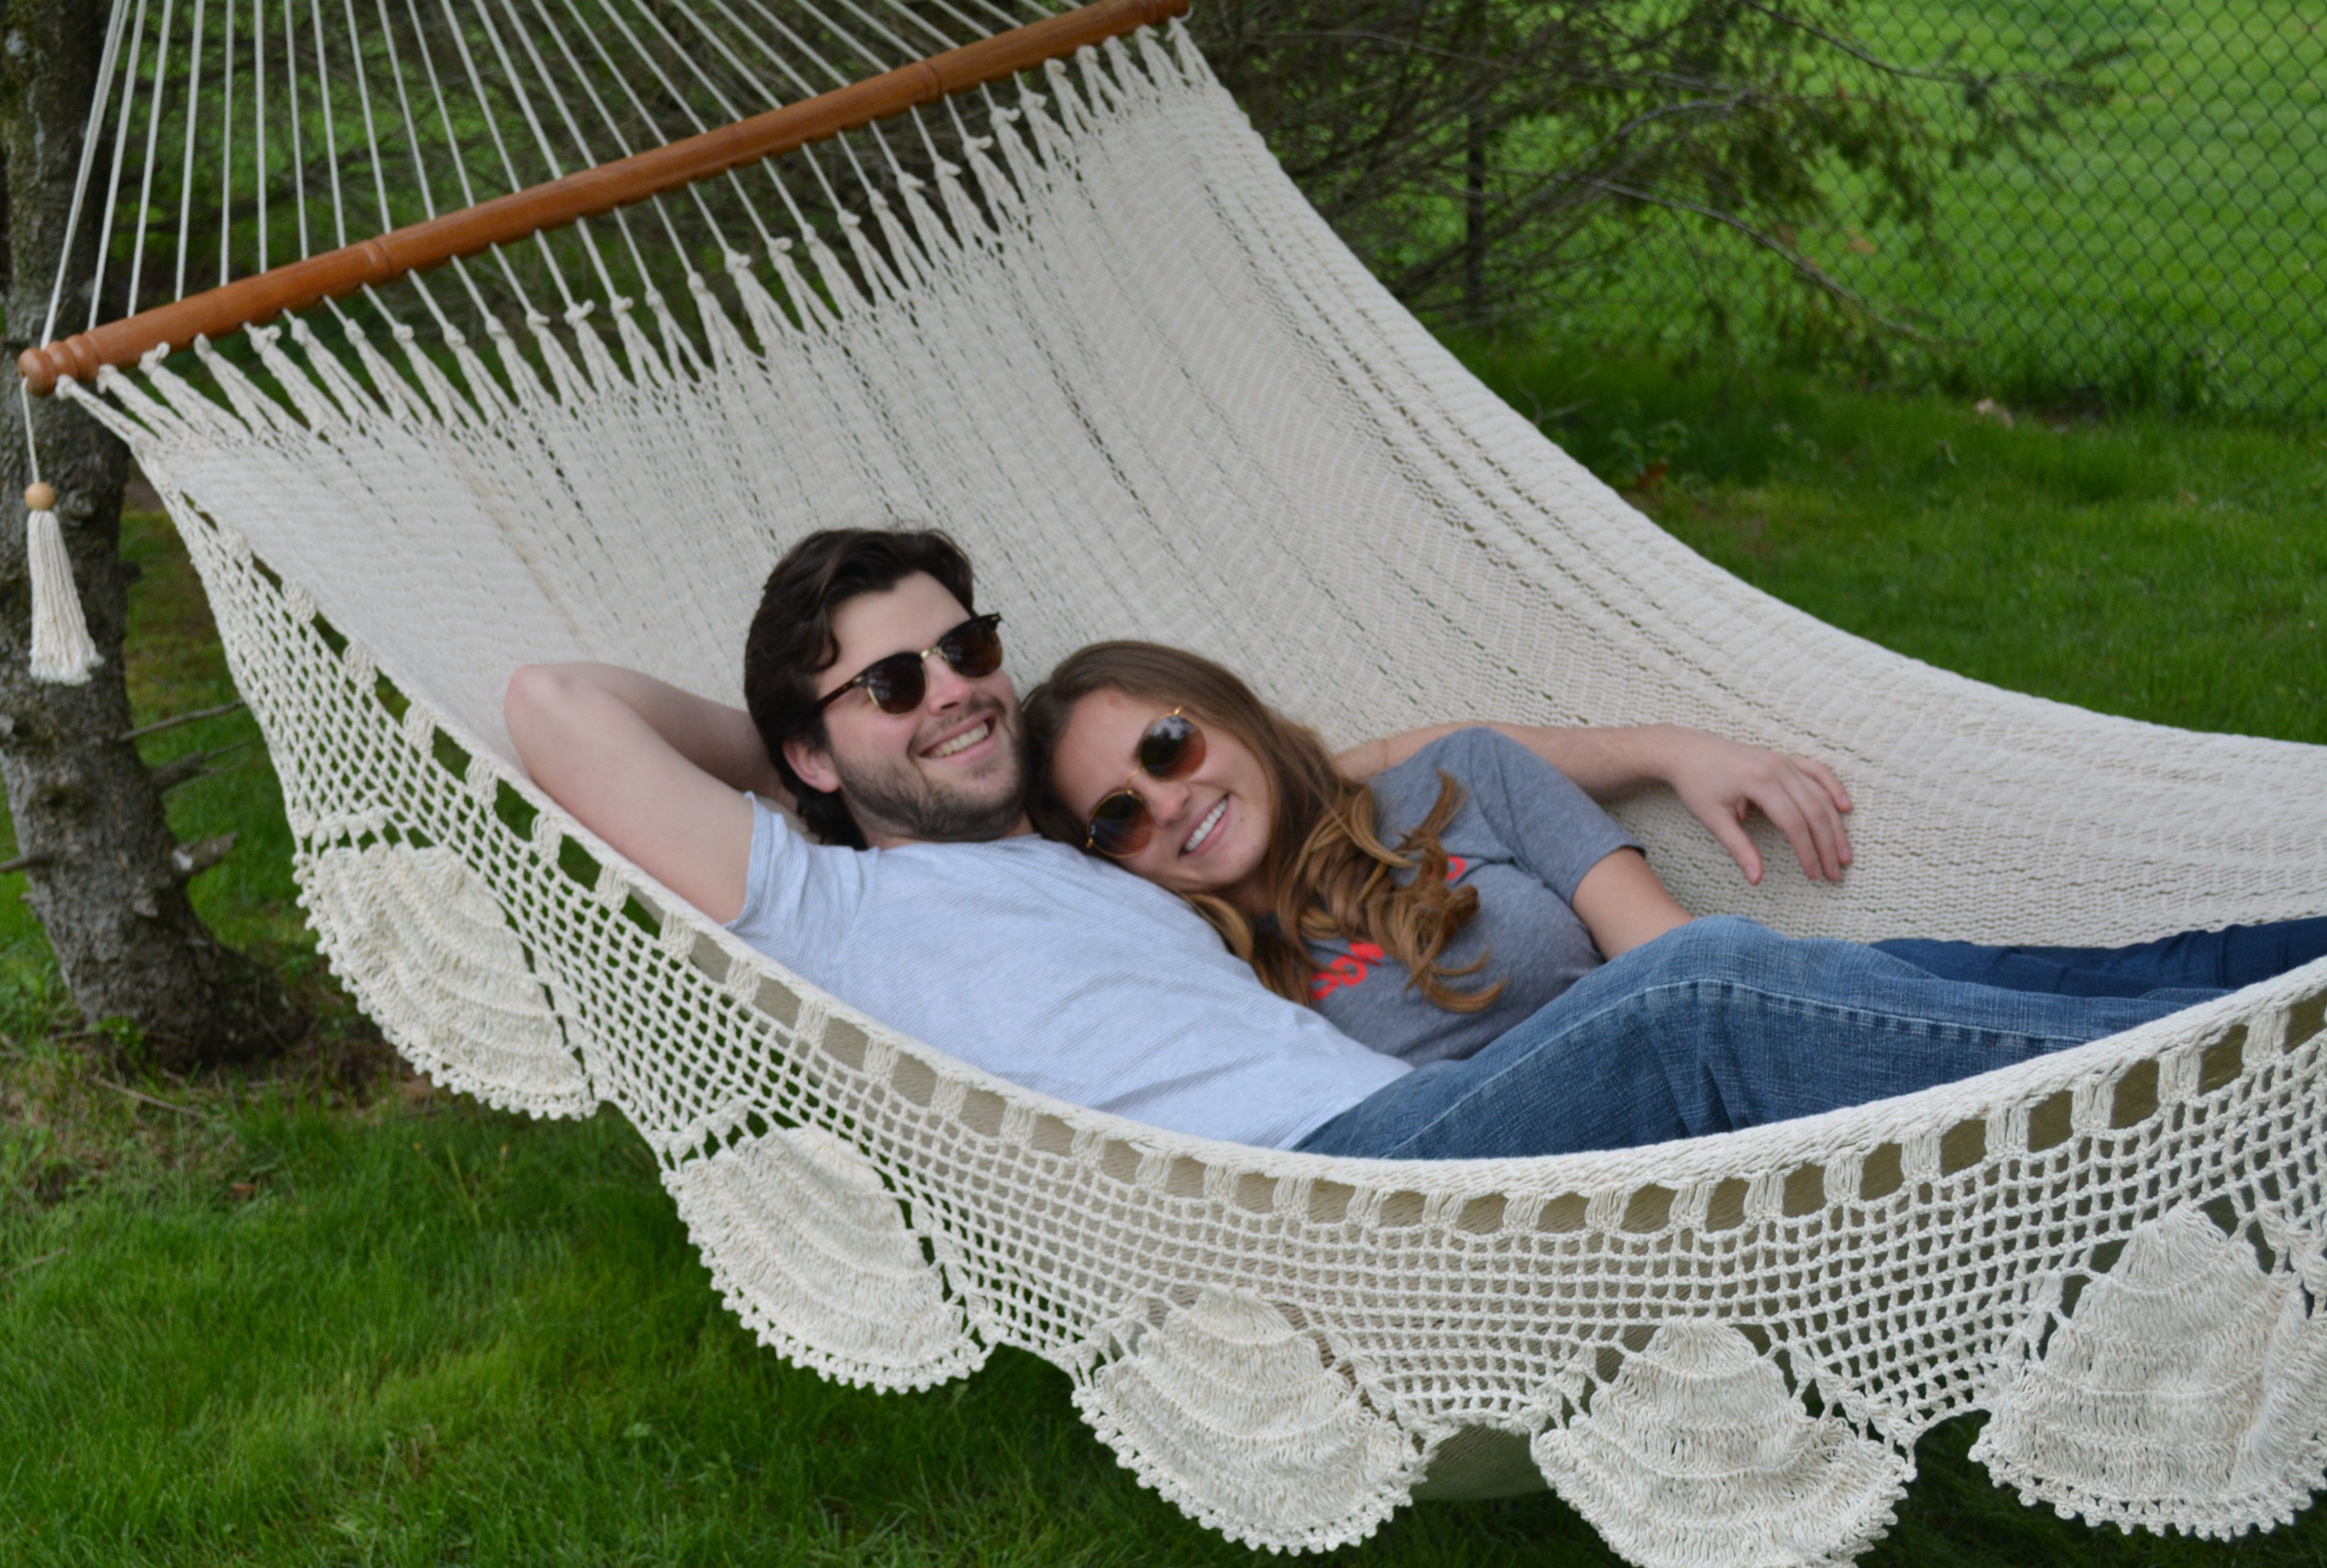 The Worlds Comfiest Hammocks Are Expertly Handwoven By Artisans In